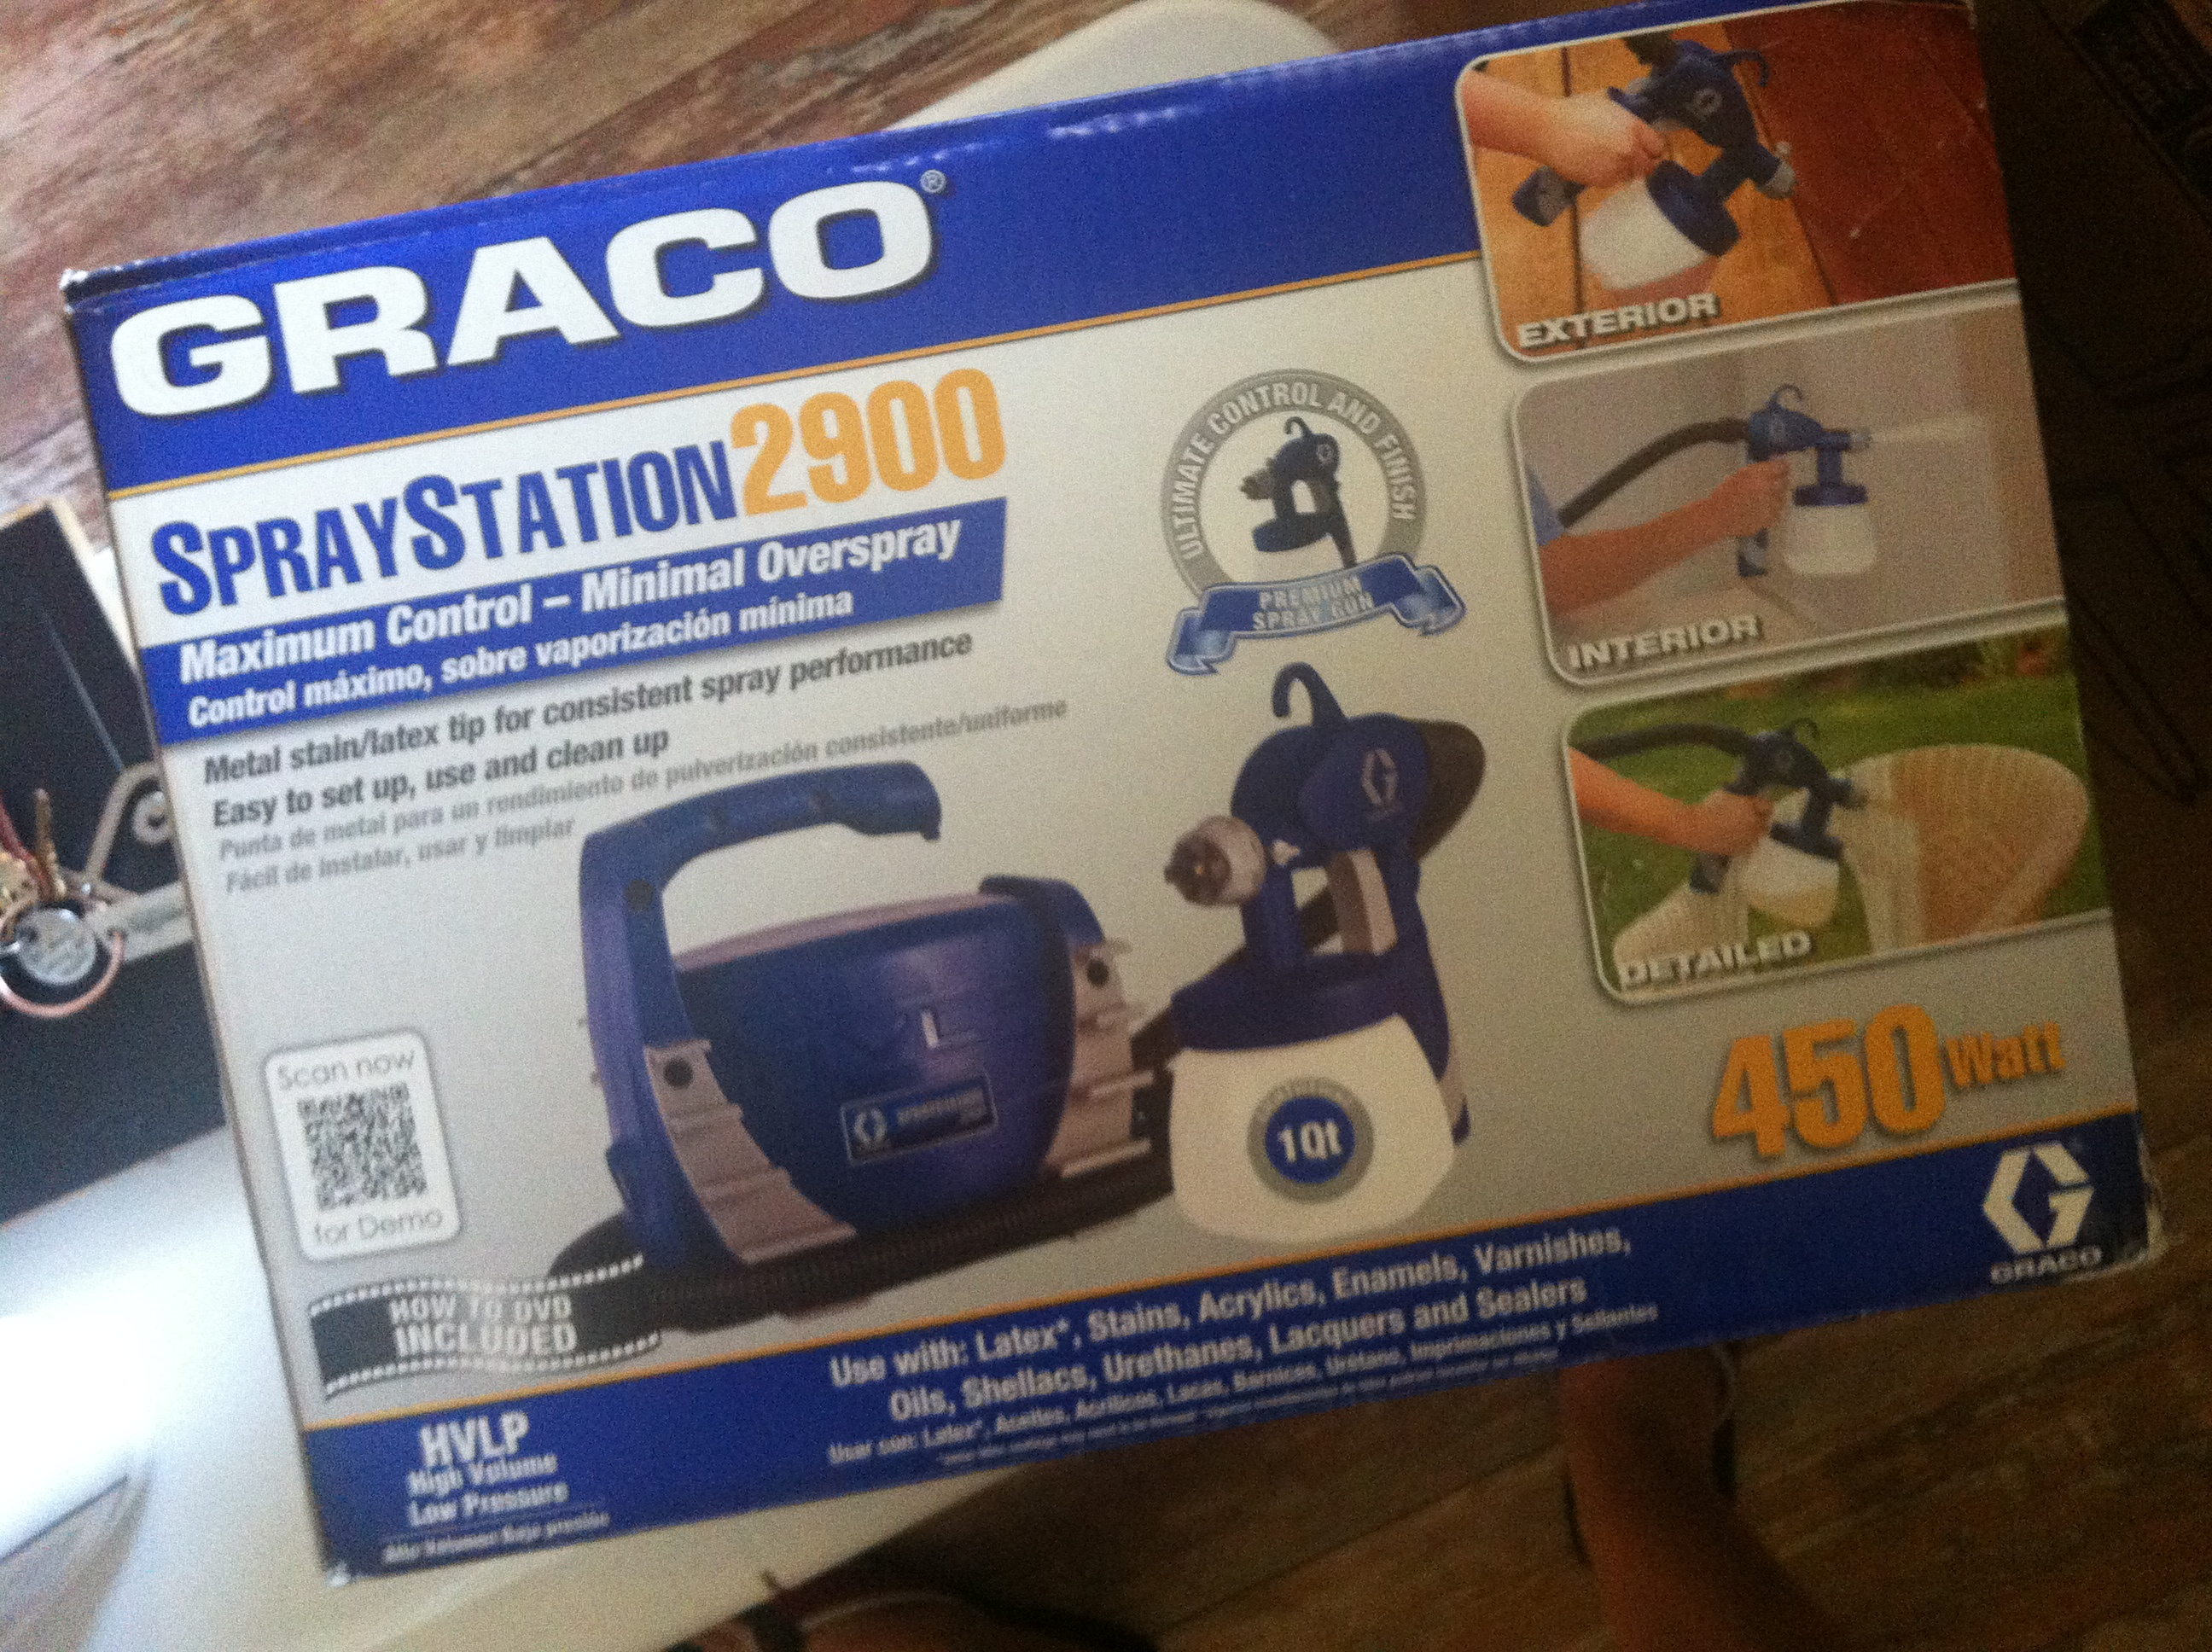 My Review of Graco Spray Station 2900